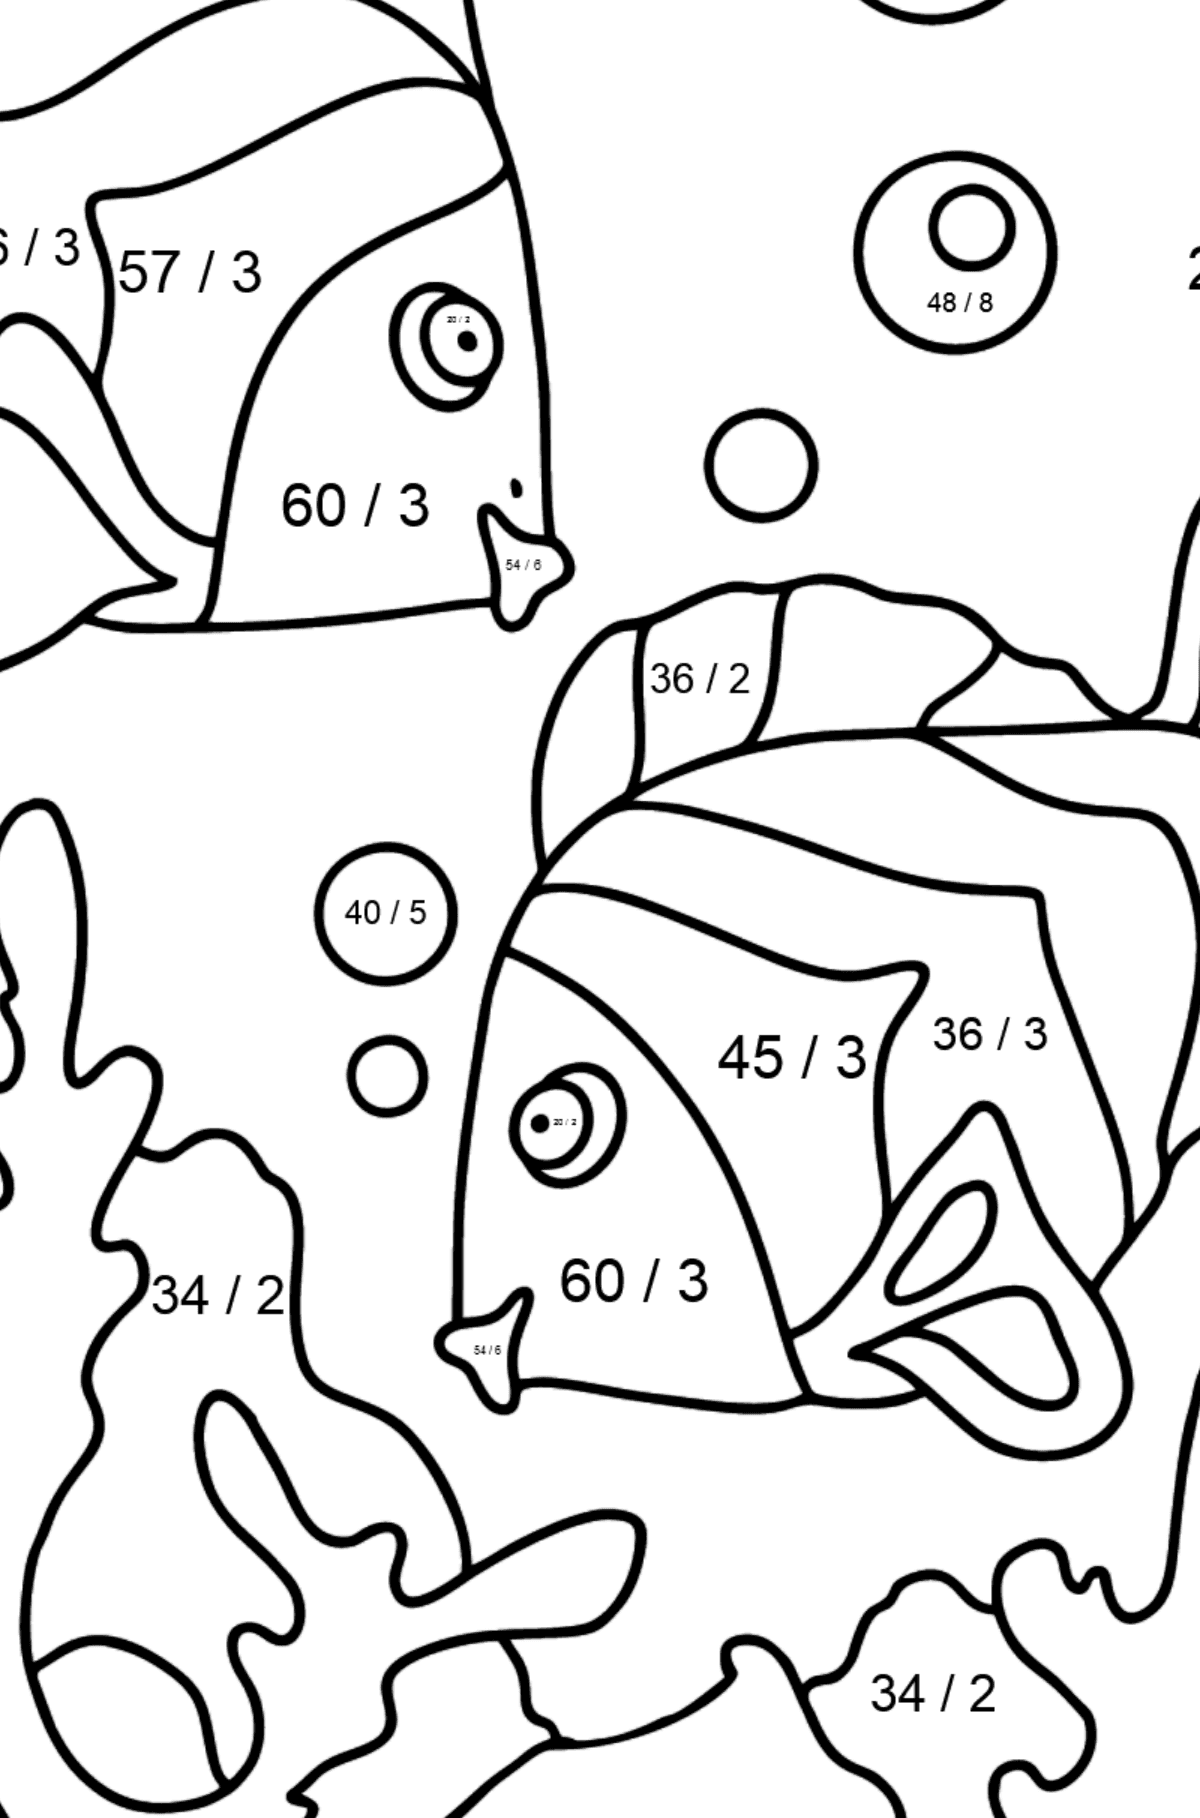 Coloring Page - Fish are Swimming Together - Math Coloring - Division for Kids